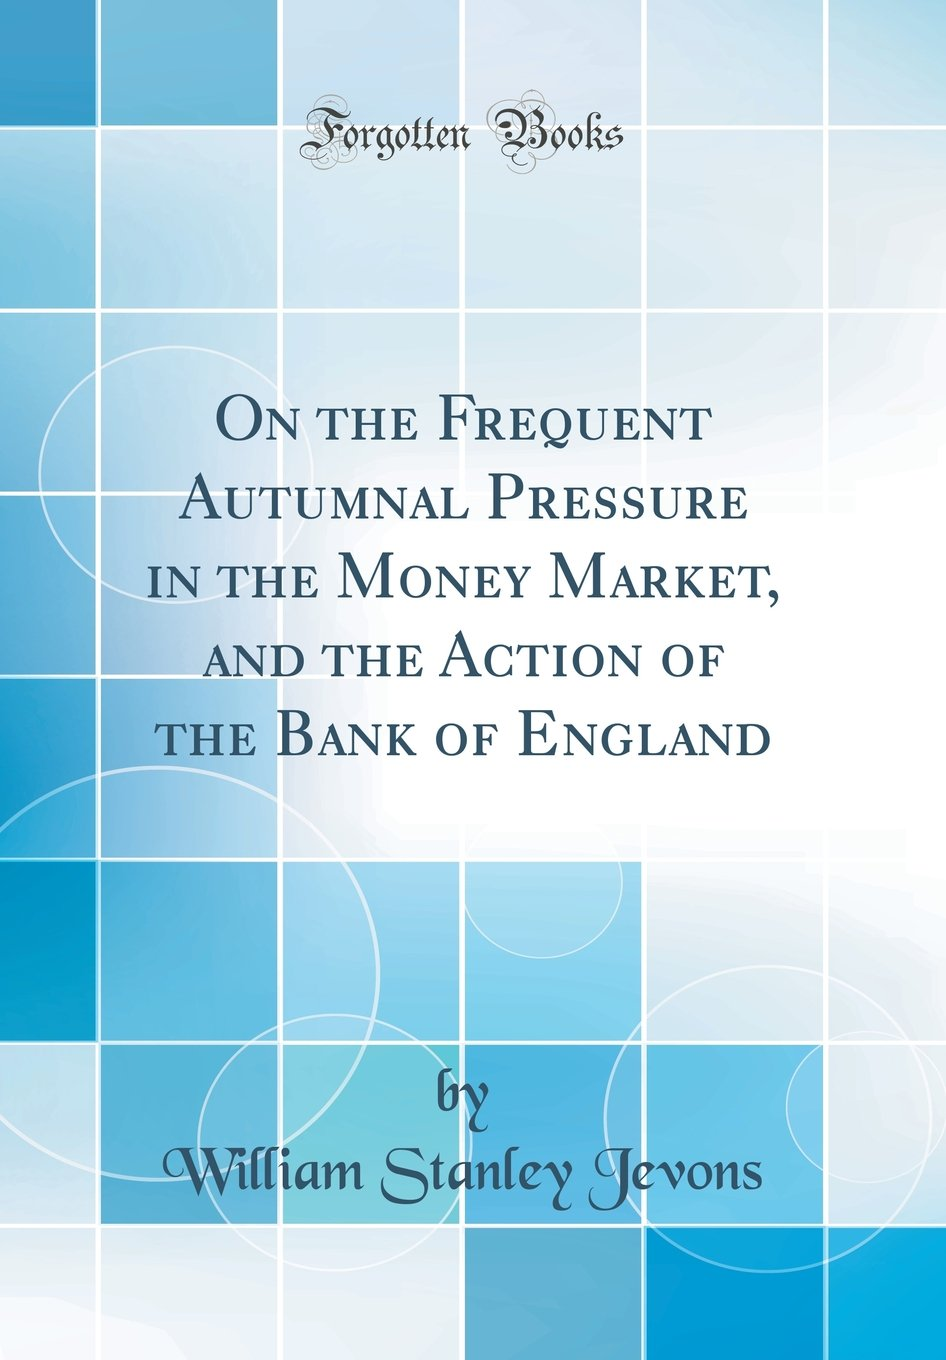 Download On the Frequent Autumnal Pressure in the Money Market, and the Action of the Bank of England (Classic Reprint) ebook